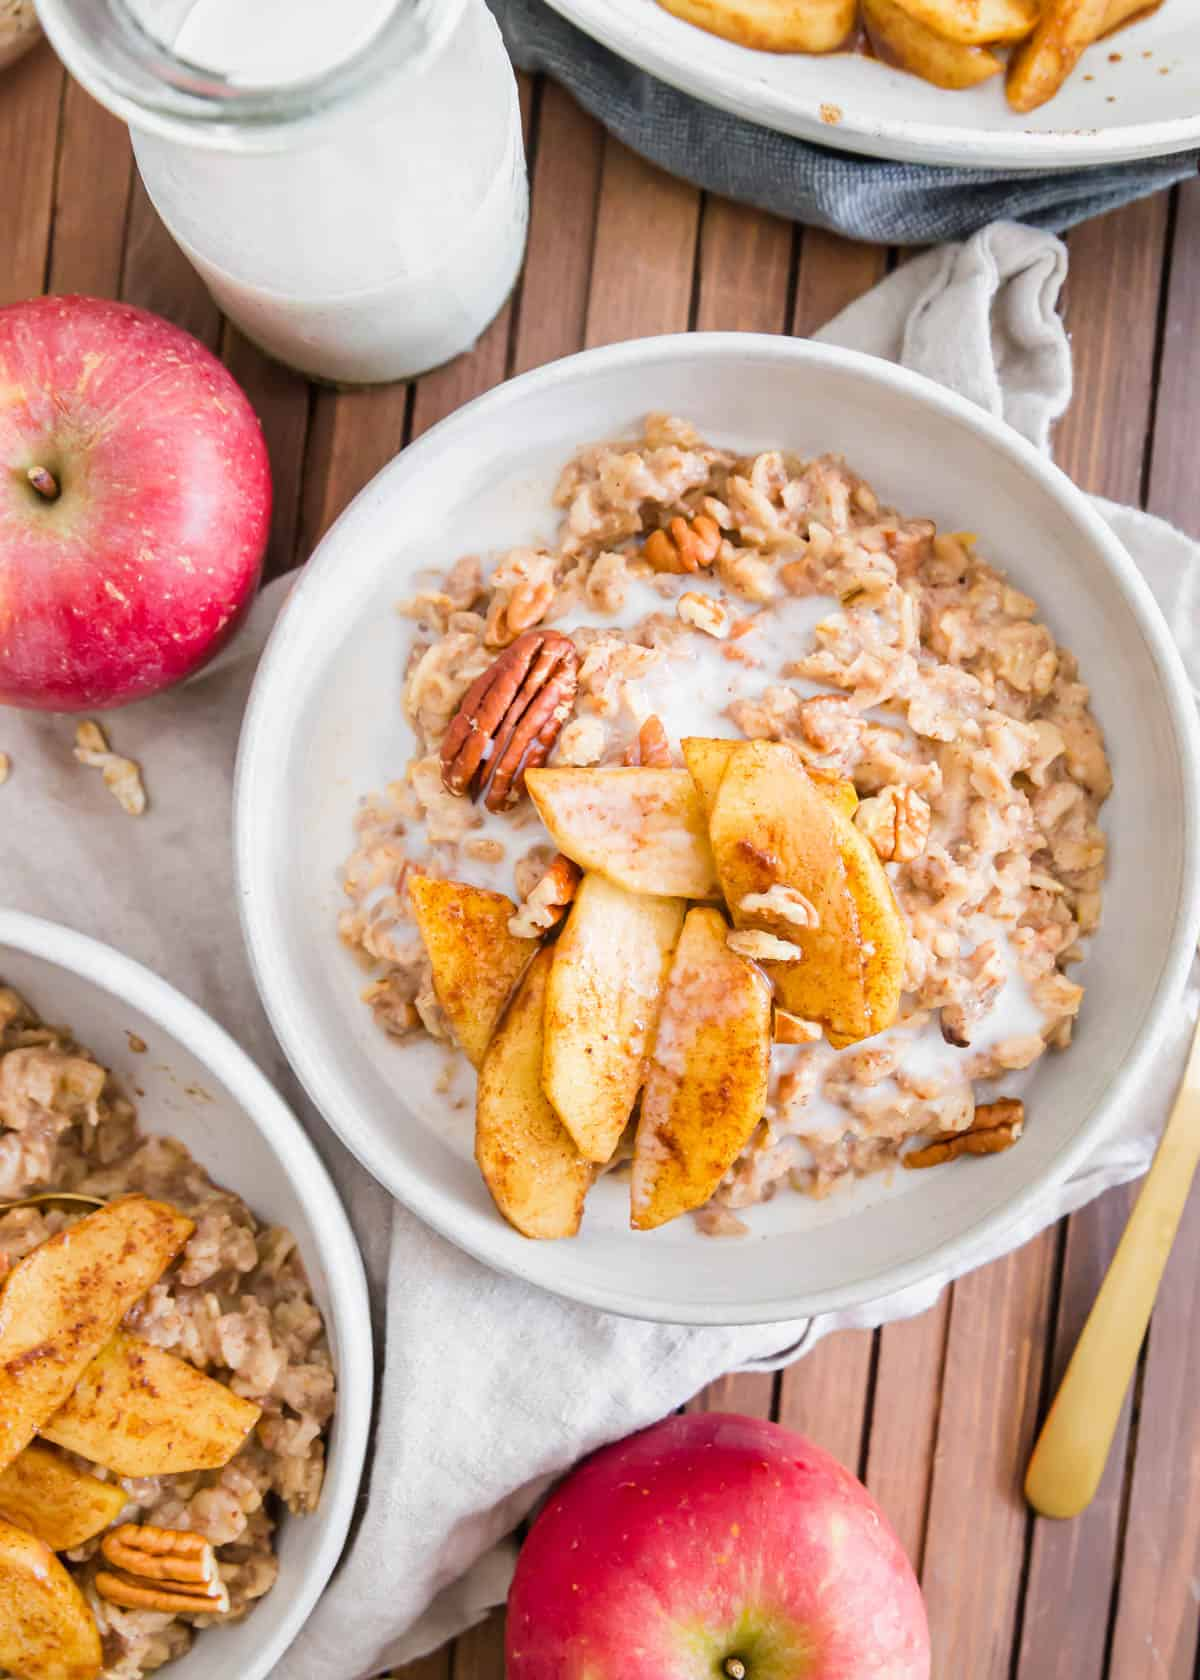 Apple cinnamon oatmeal is the perfect fall breakfast. It's packed with cooked apples and warming spices like cinnamon, nutmeg and ginger then topped with maple syrup sautéed apple slices and chopped pecans.